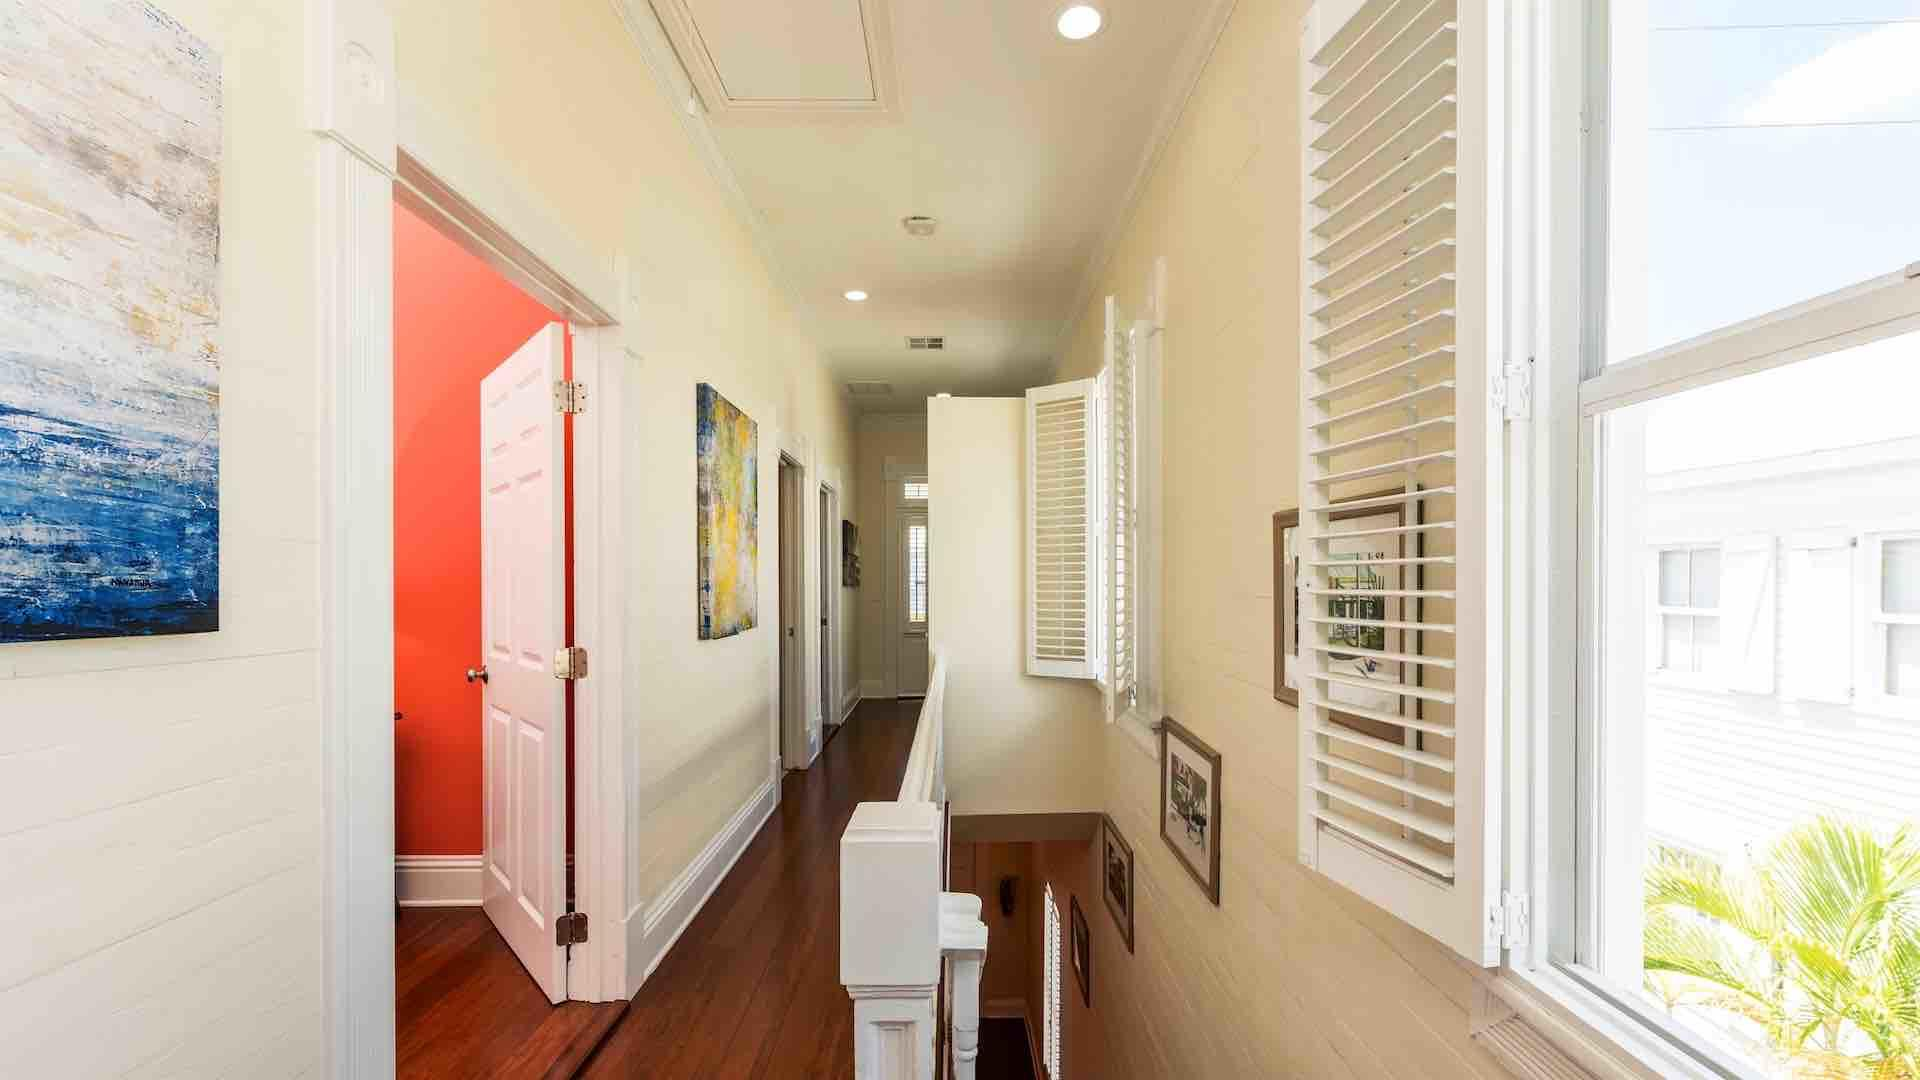 There is a lockable door downstairs that connects the two condos...